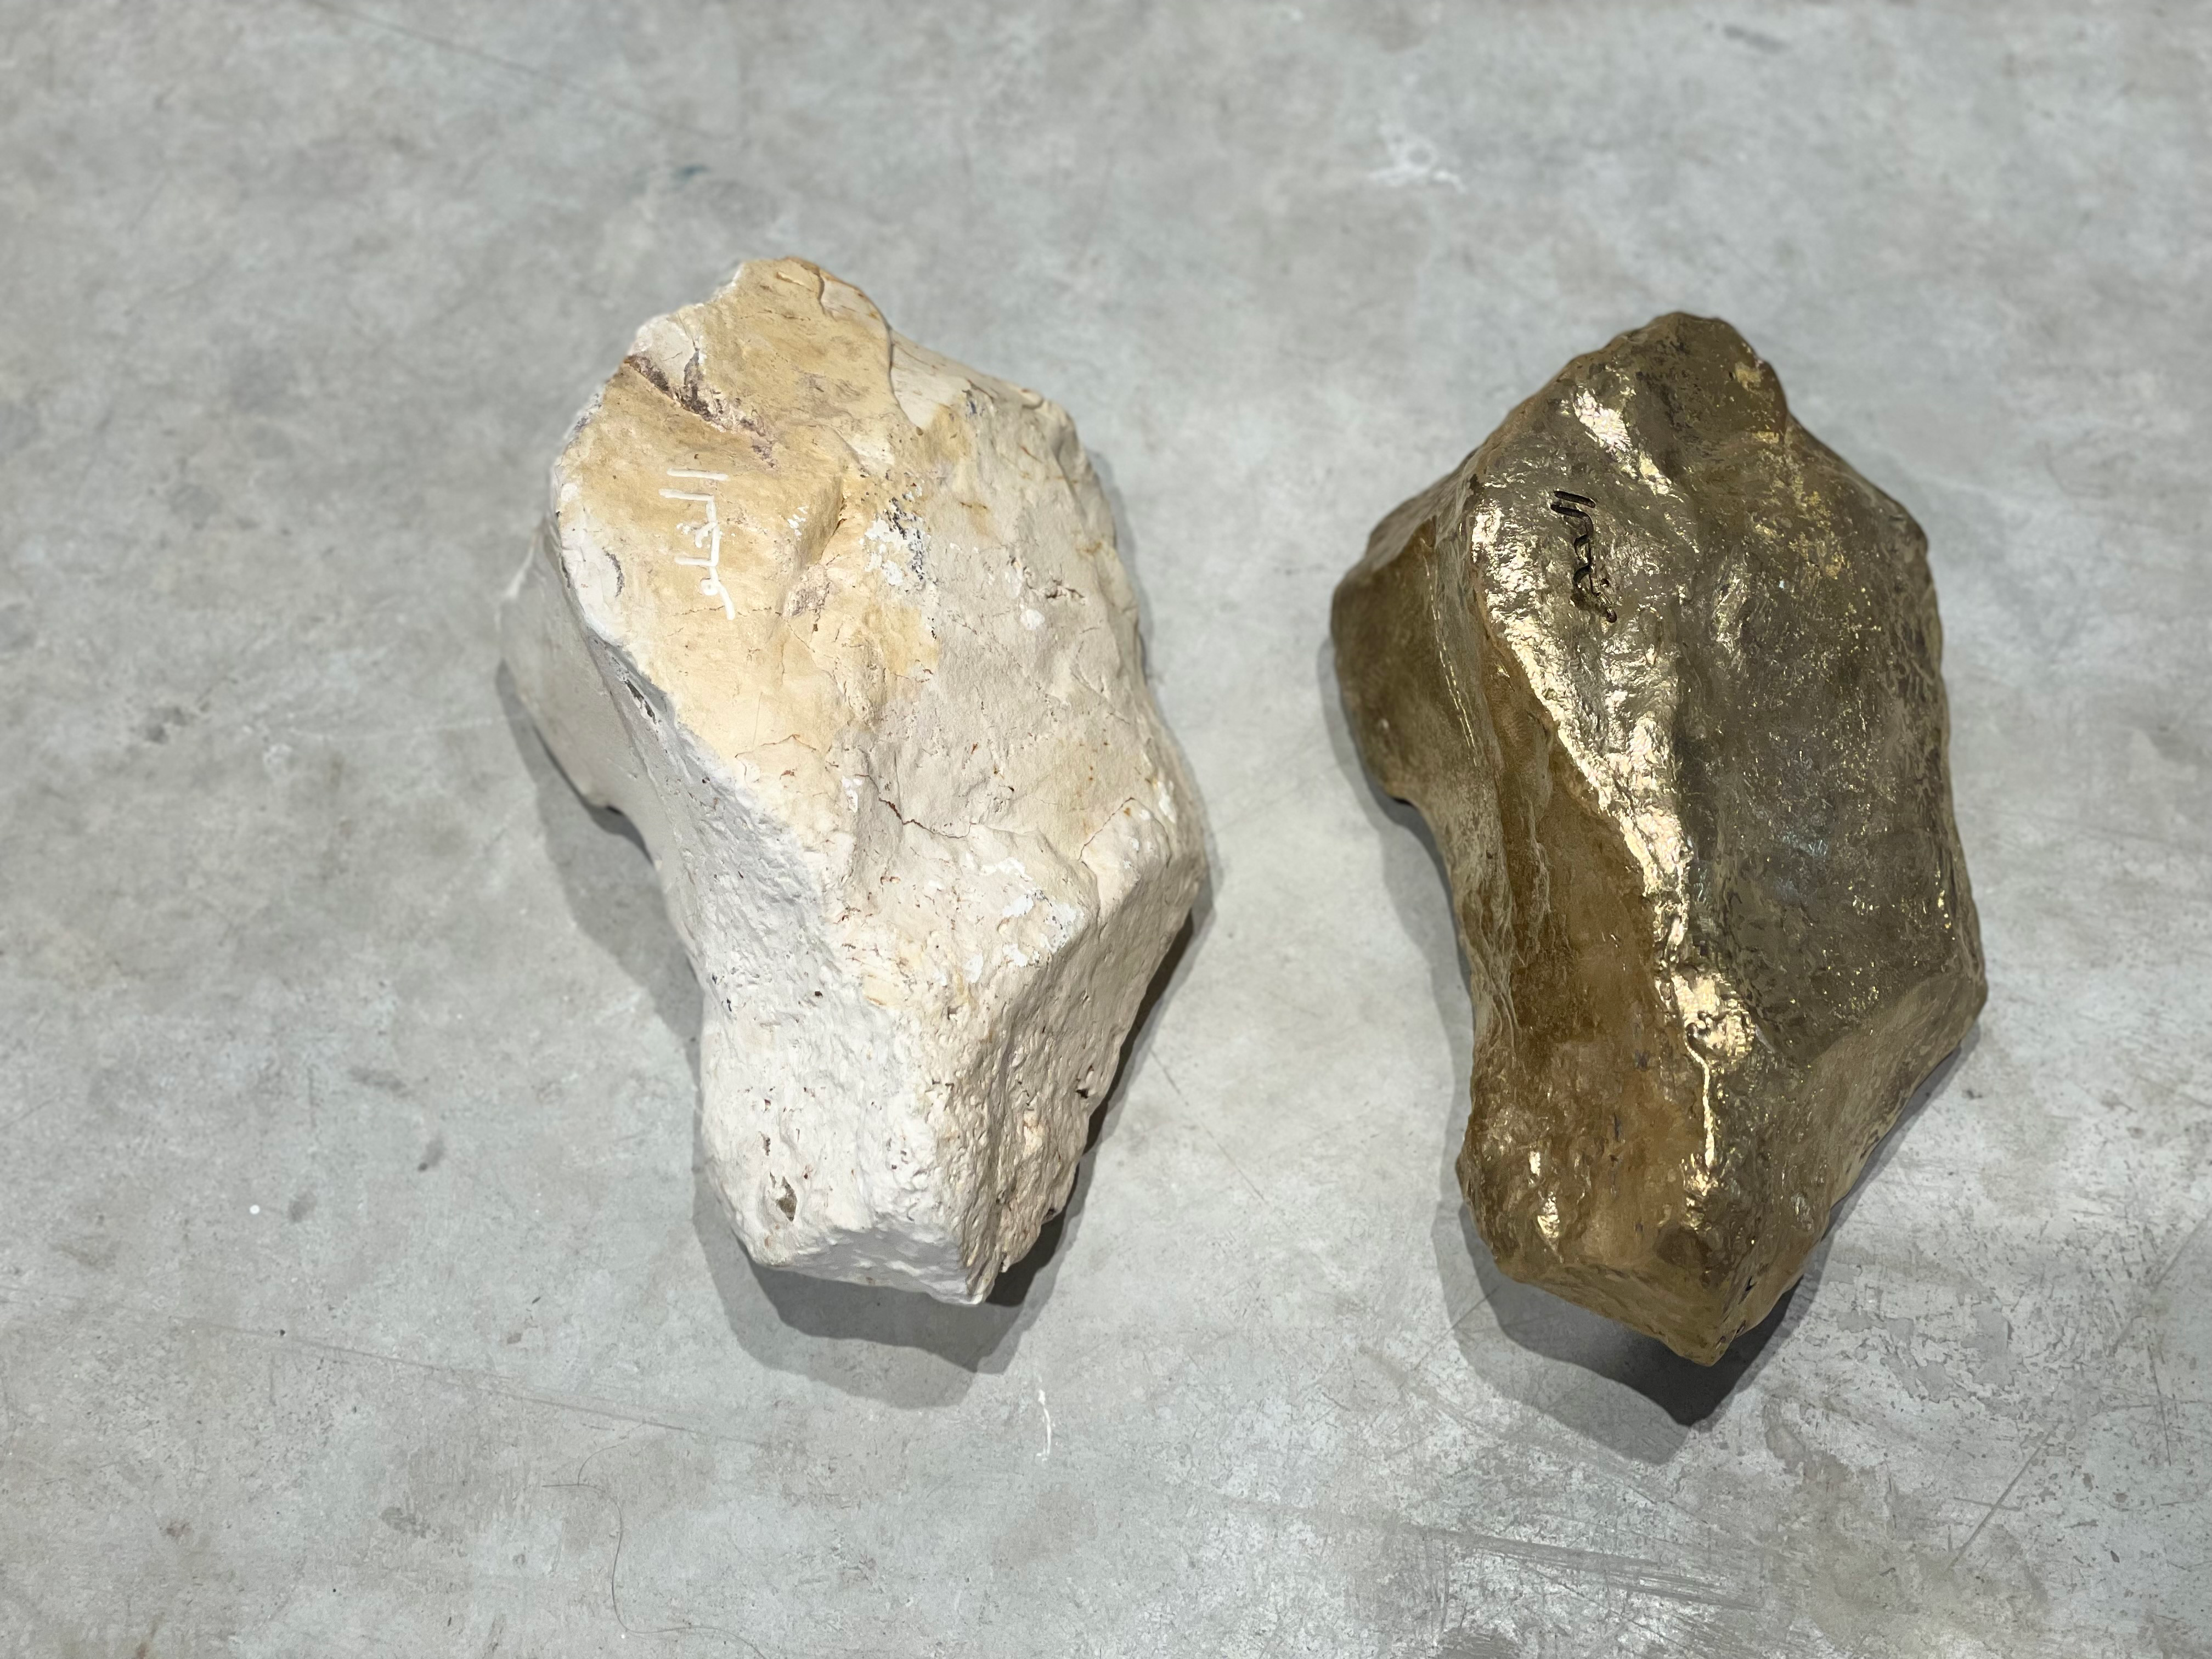 SWEET STONES  الحجر الحلو 2018—2021 Five lime stones and their five brass replicas